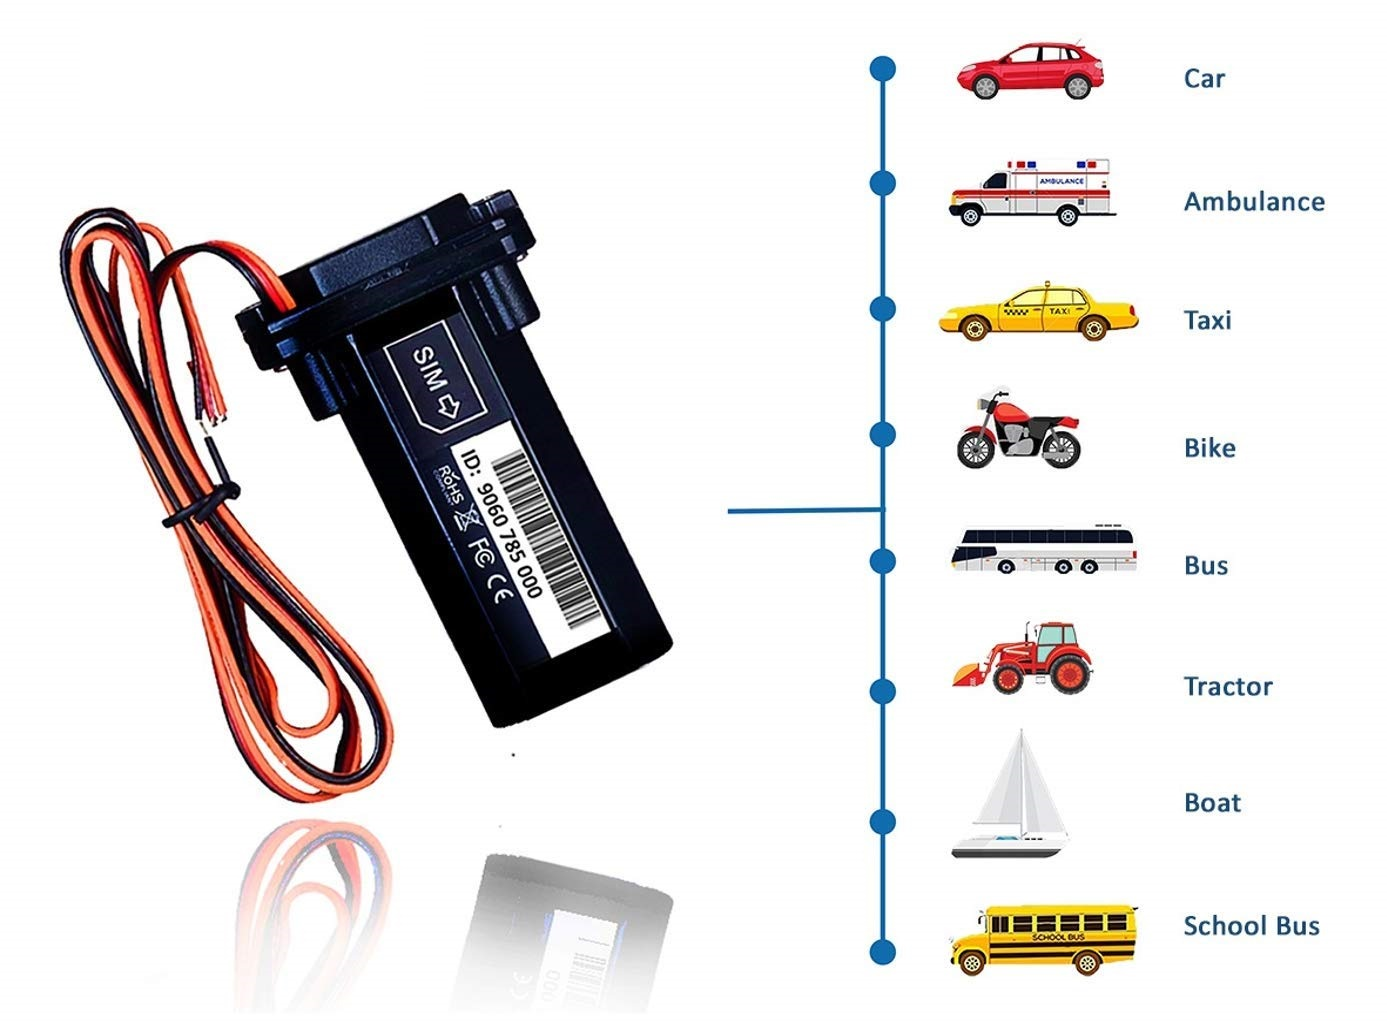 Drivool Best Gps Tracker For Car In India